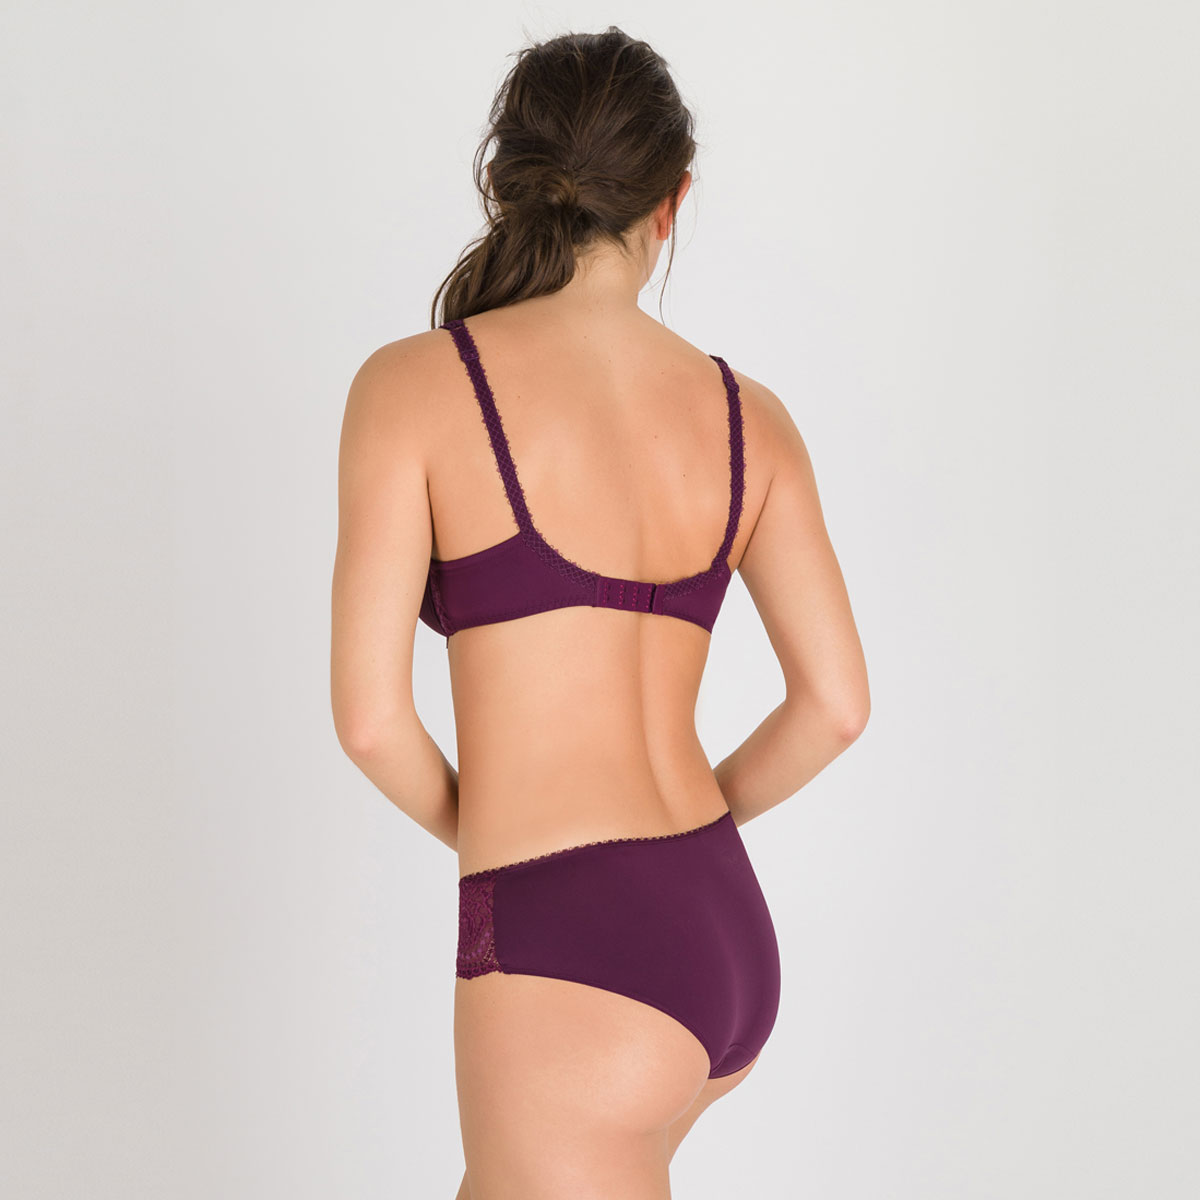 Spacer Bra in Dark Purple - Flower Elegance-PLAYTEX